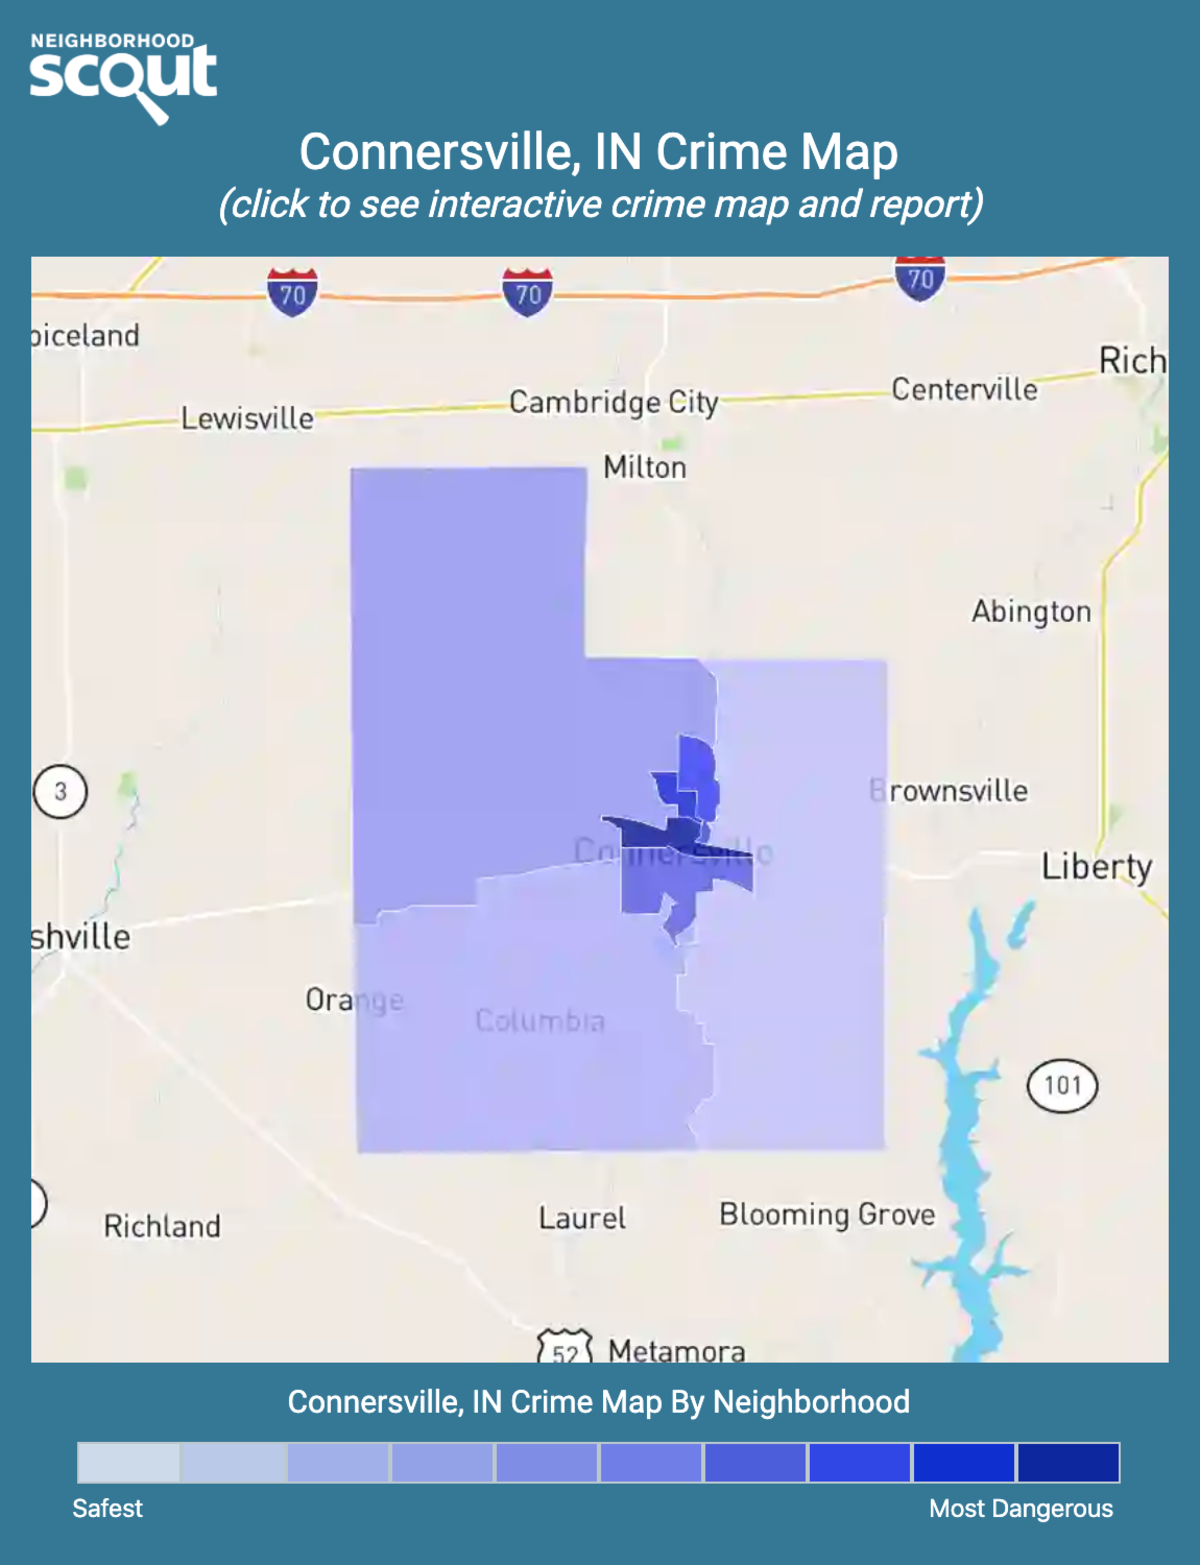 Connersville, Indiana crime map